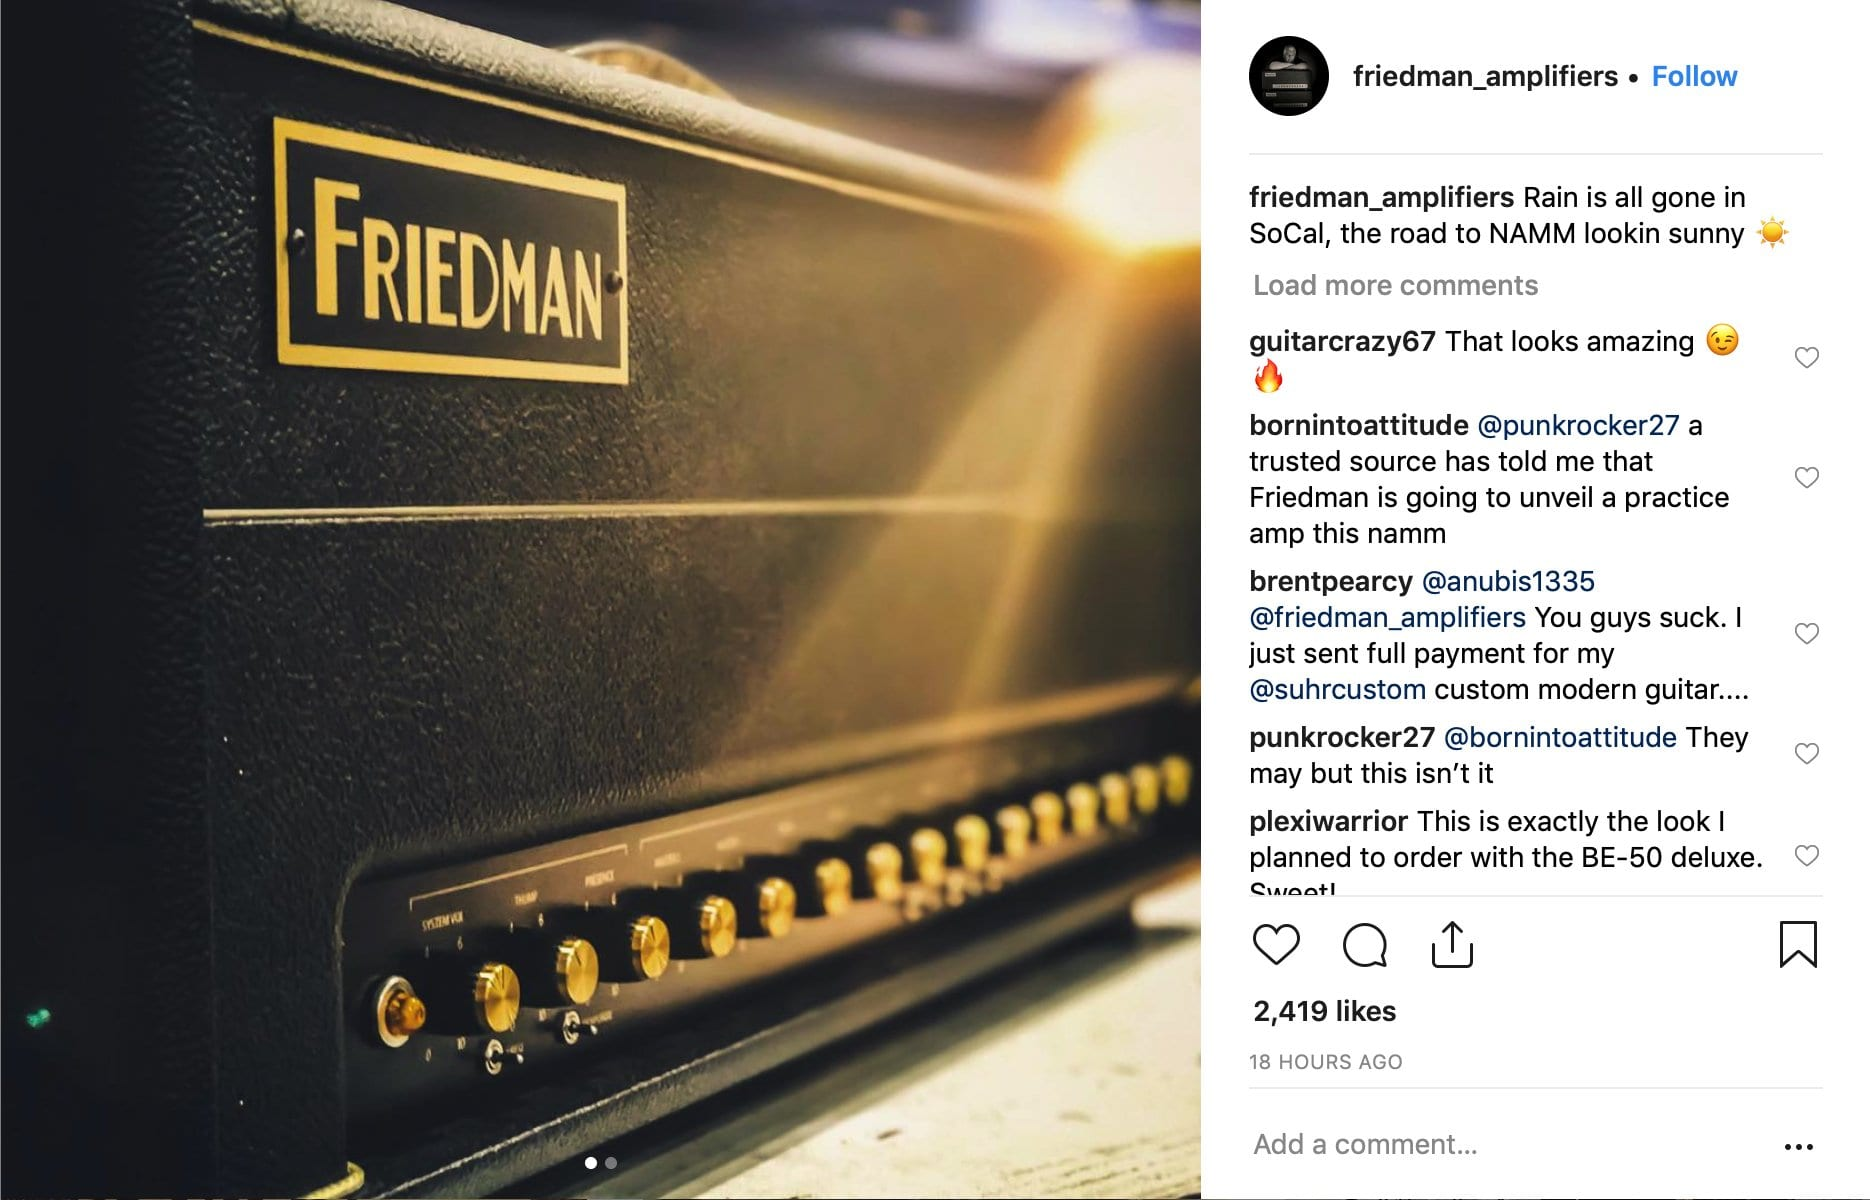 Friedman SoCal? 2019 Instagram